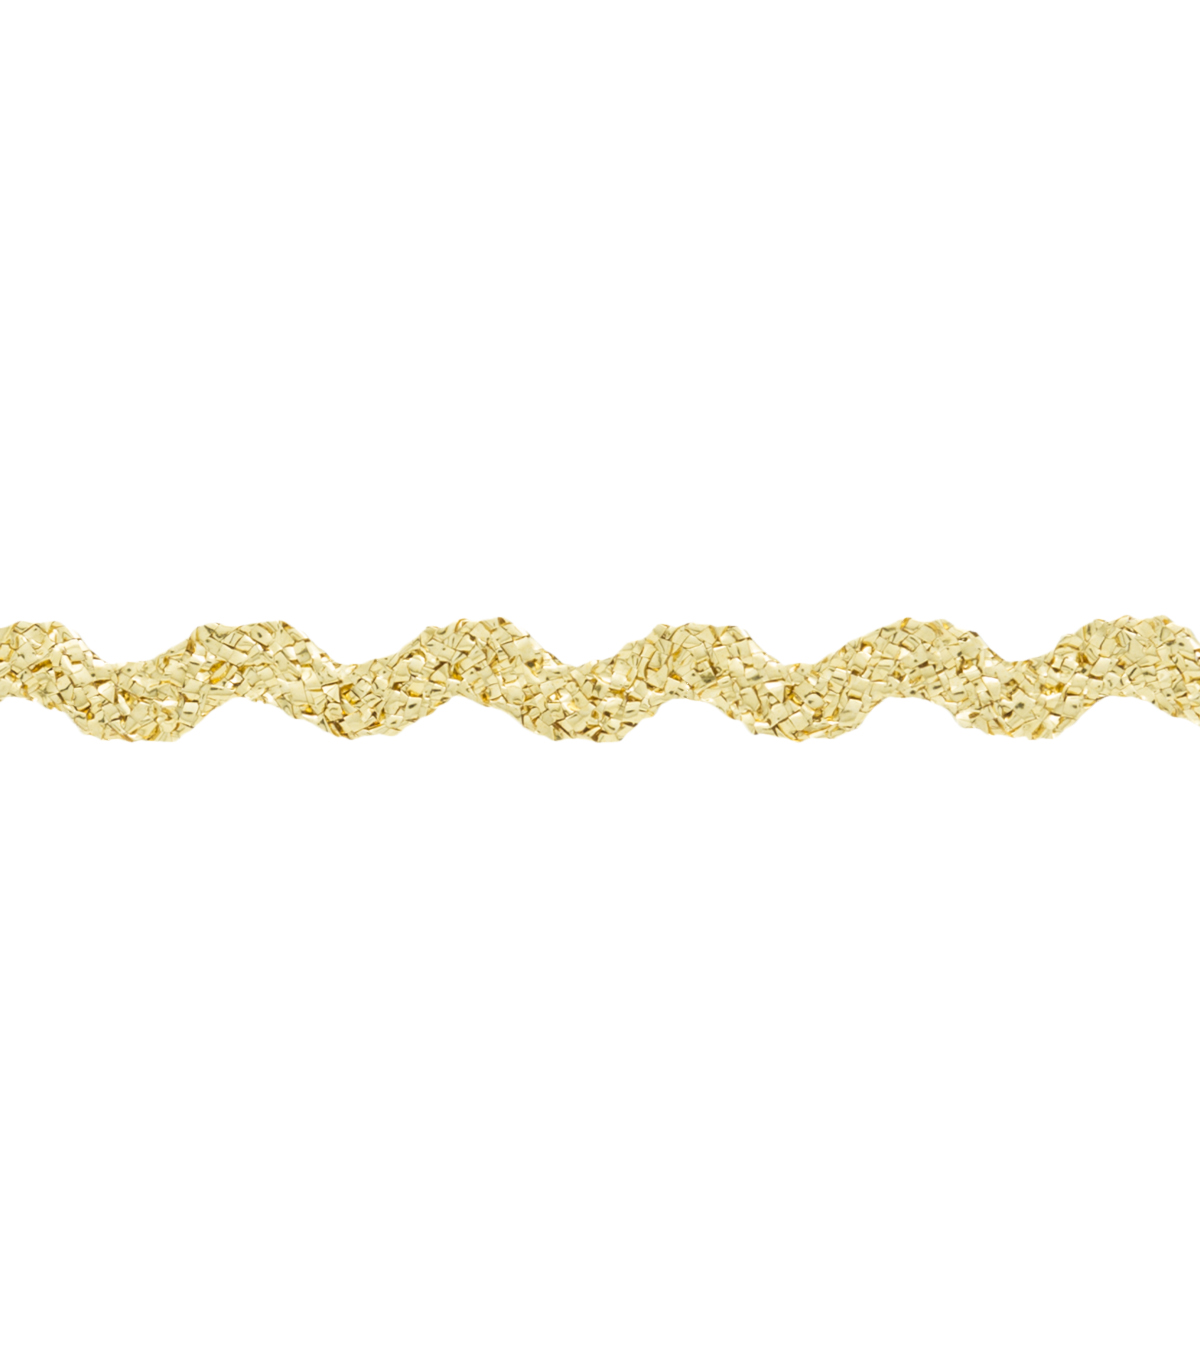 Wrights 0.25\u0022 Baby Rick Rack Gold Apparel Trim